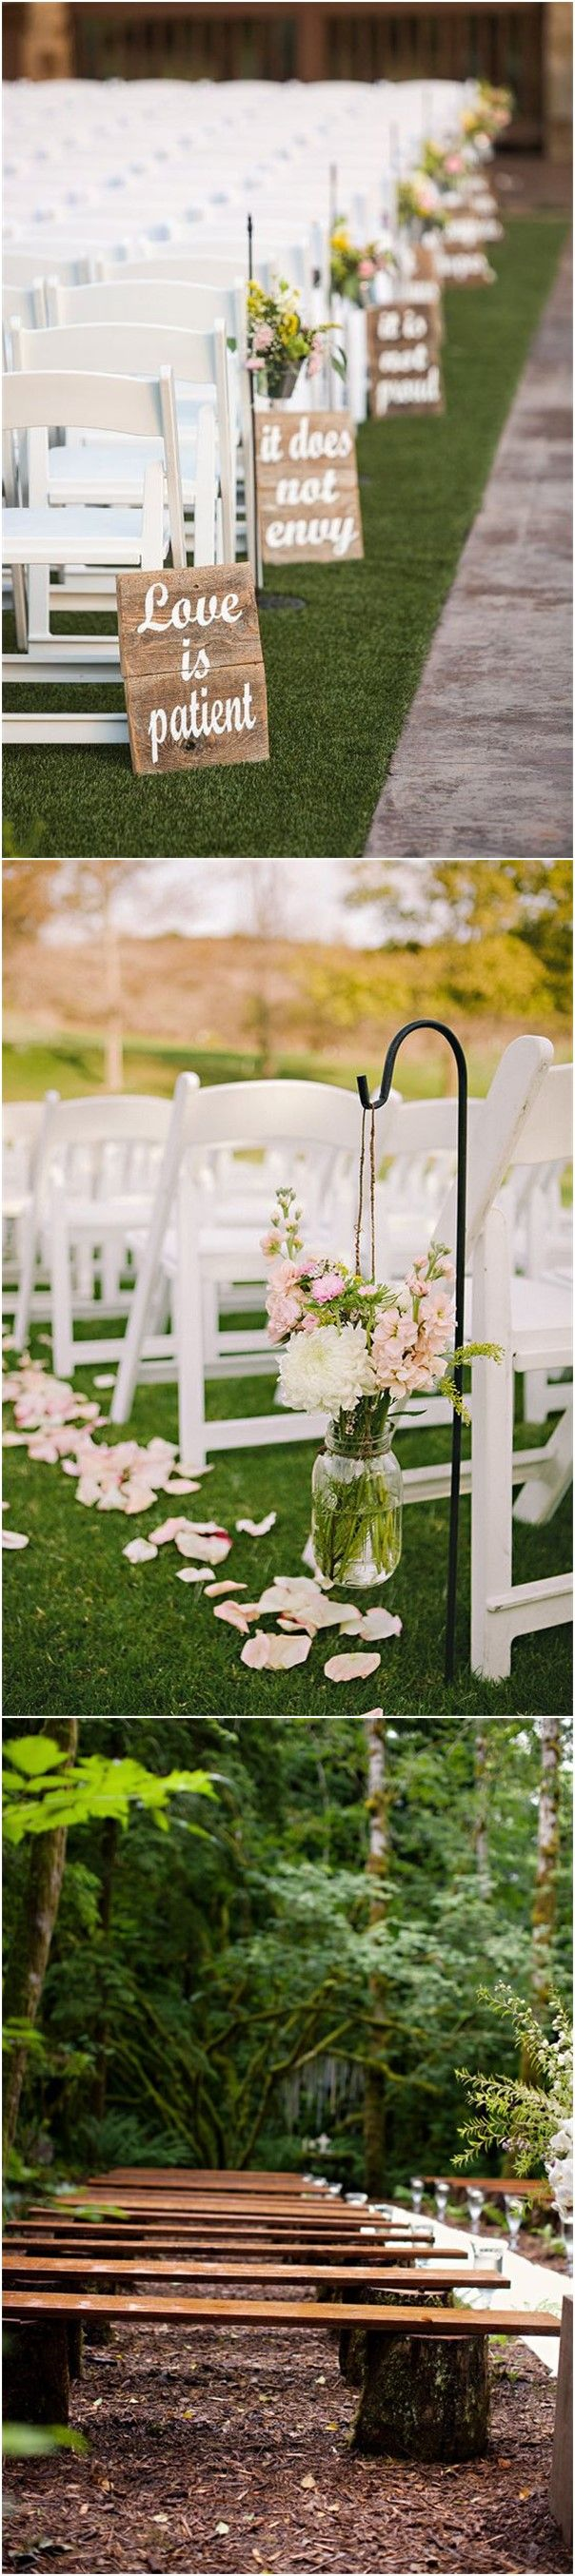 25 rustic outdoor wedding ceremony decorations ideas casamento 25 rustic outdoor wedding ceremony decorations ideas junglespirit Gallery